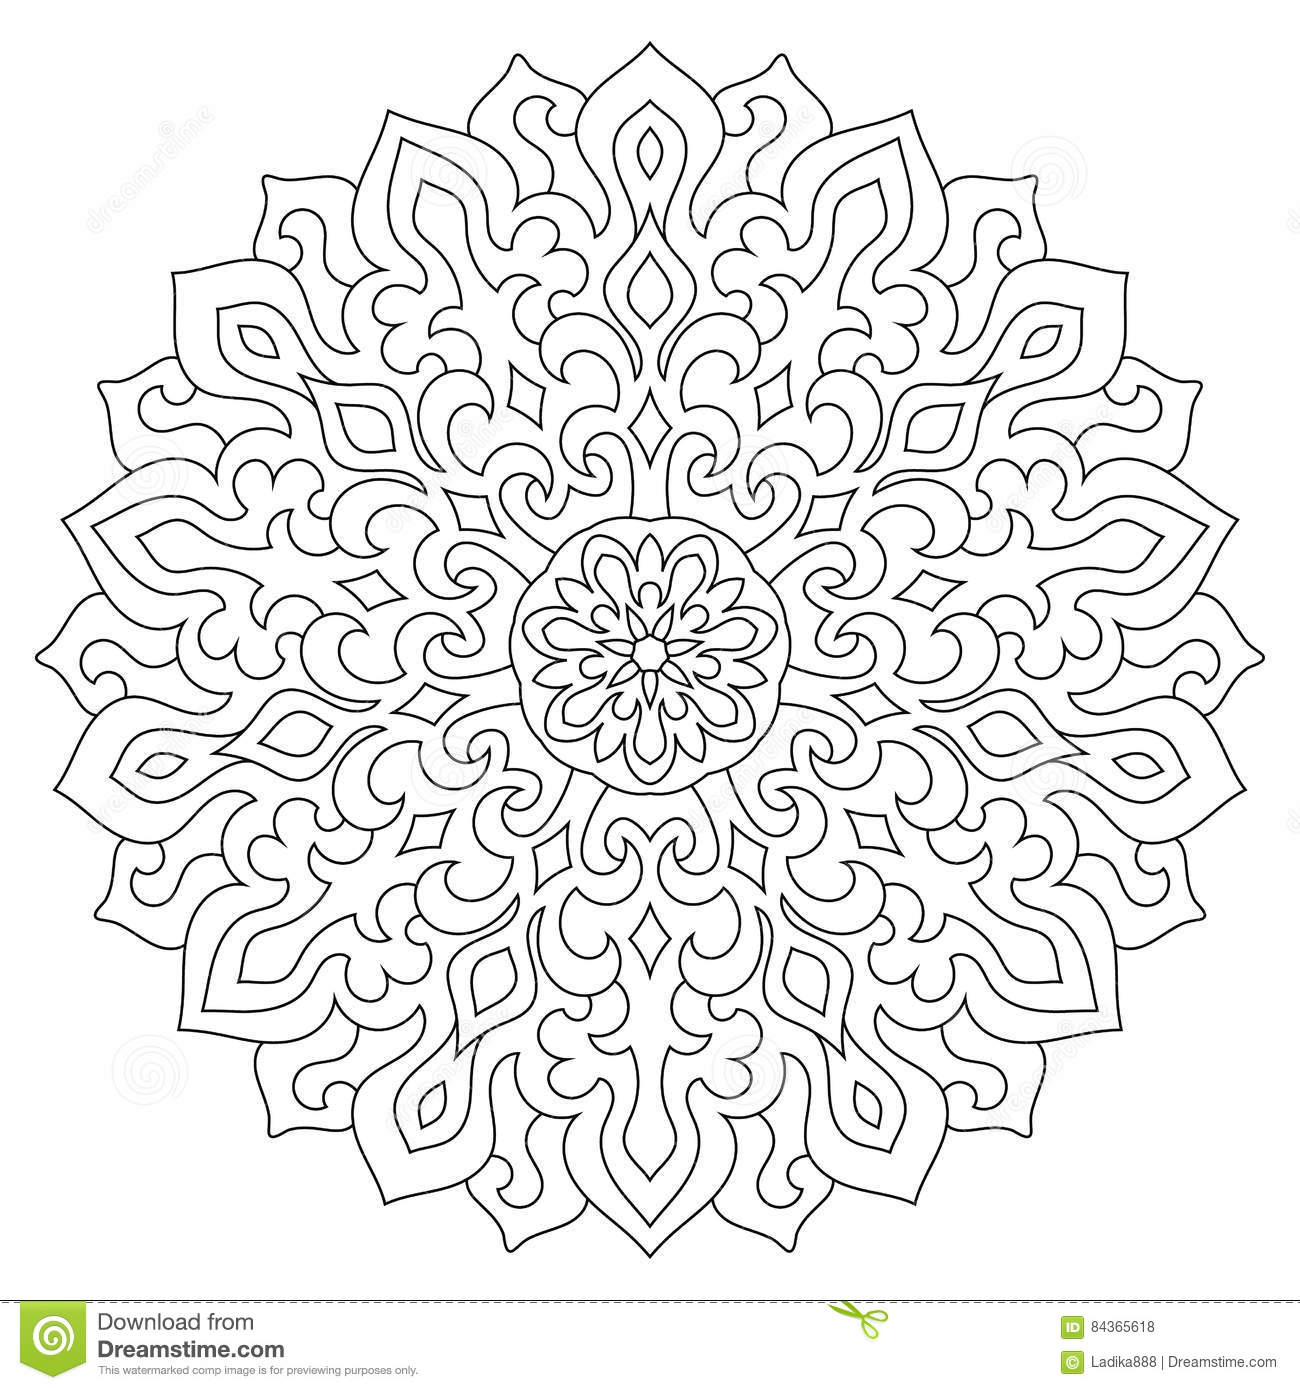 Circular Geometric Ornament Round Outline Mandala For Coloring Page Stock Vector Illustration Of Eastern Element 84365618